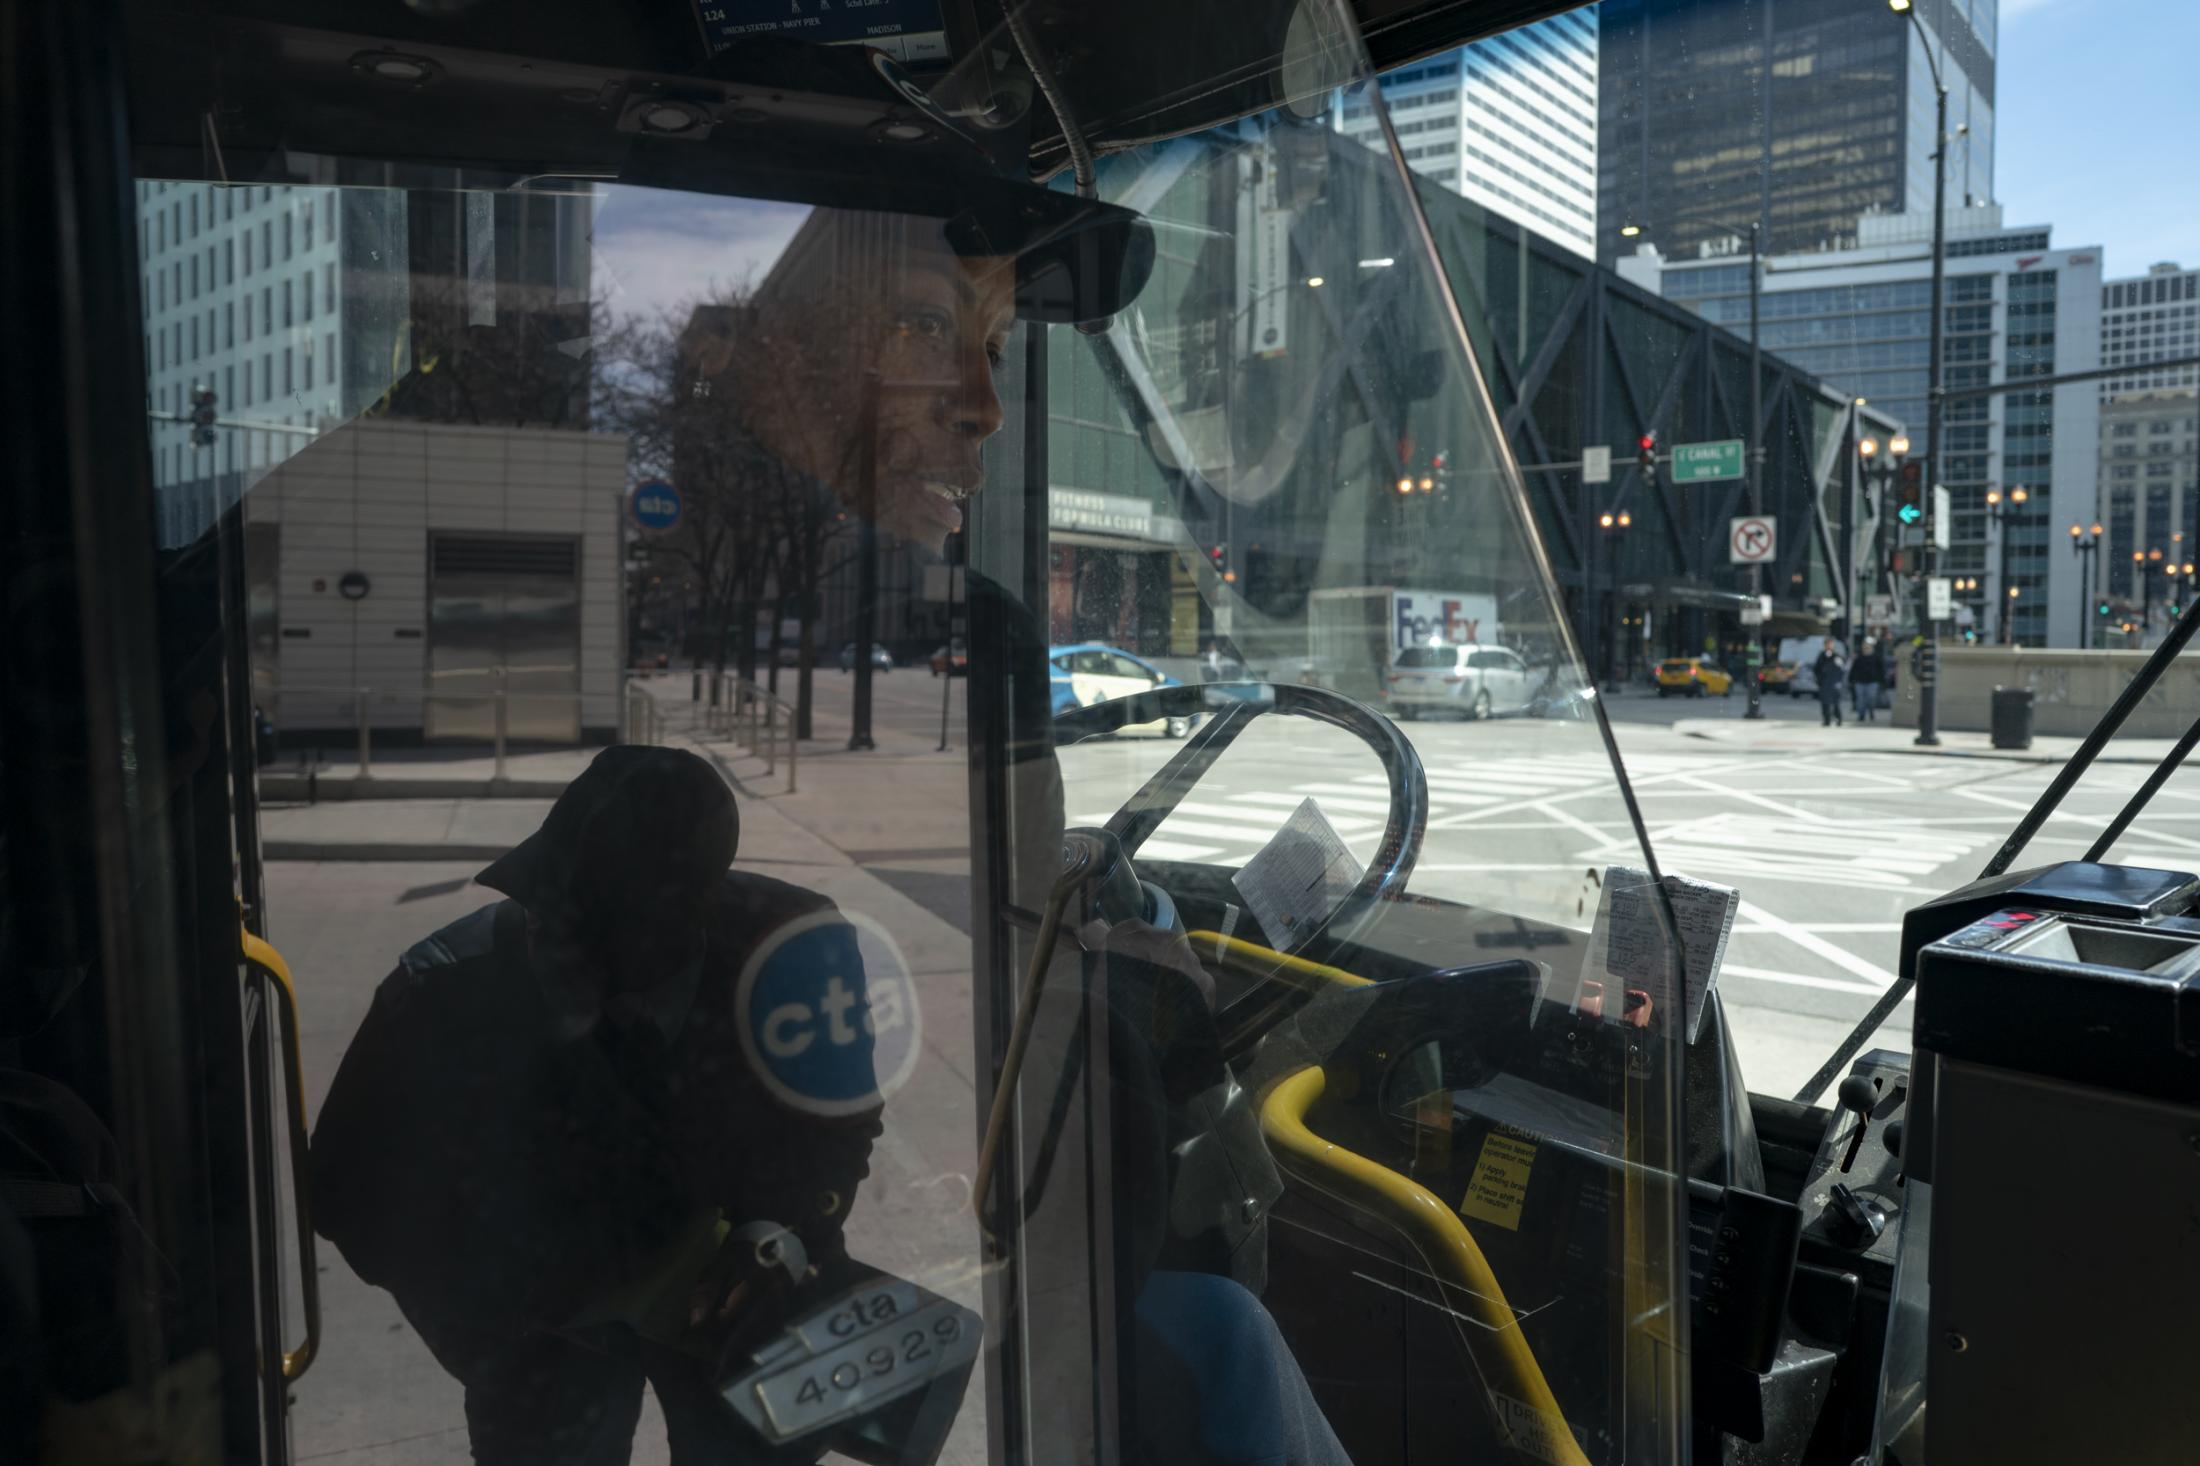 Bus driver Lorrie Lackland checks in with a Chicago Transit Authority agent before driving the 124 bus in Chicago on April 25, 2019. Lackland has been a bus driver for 14 years.